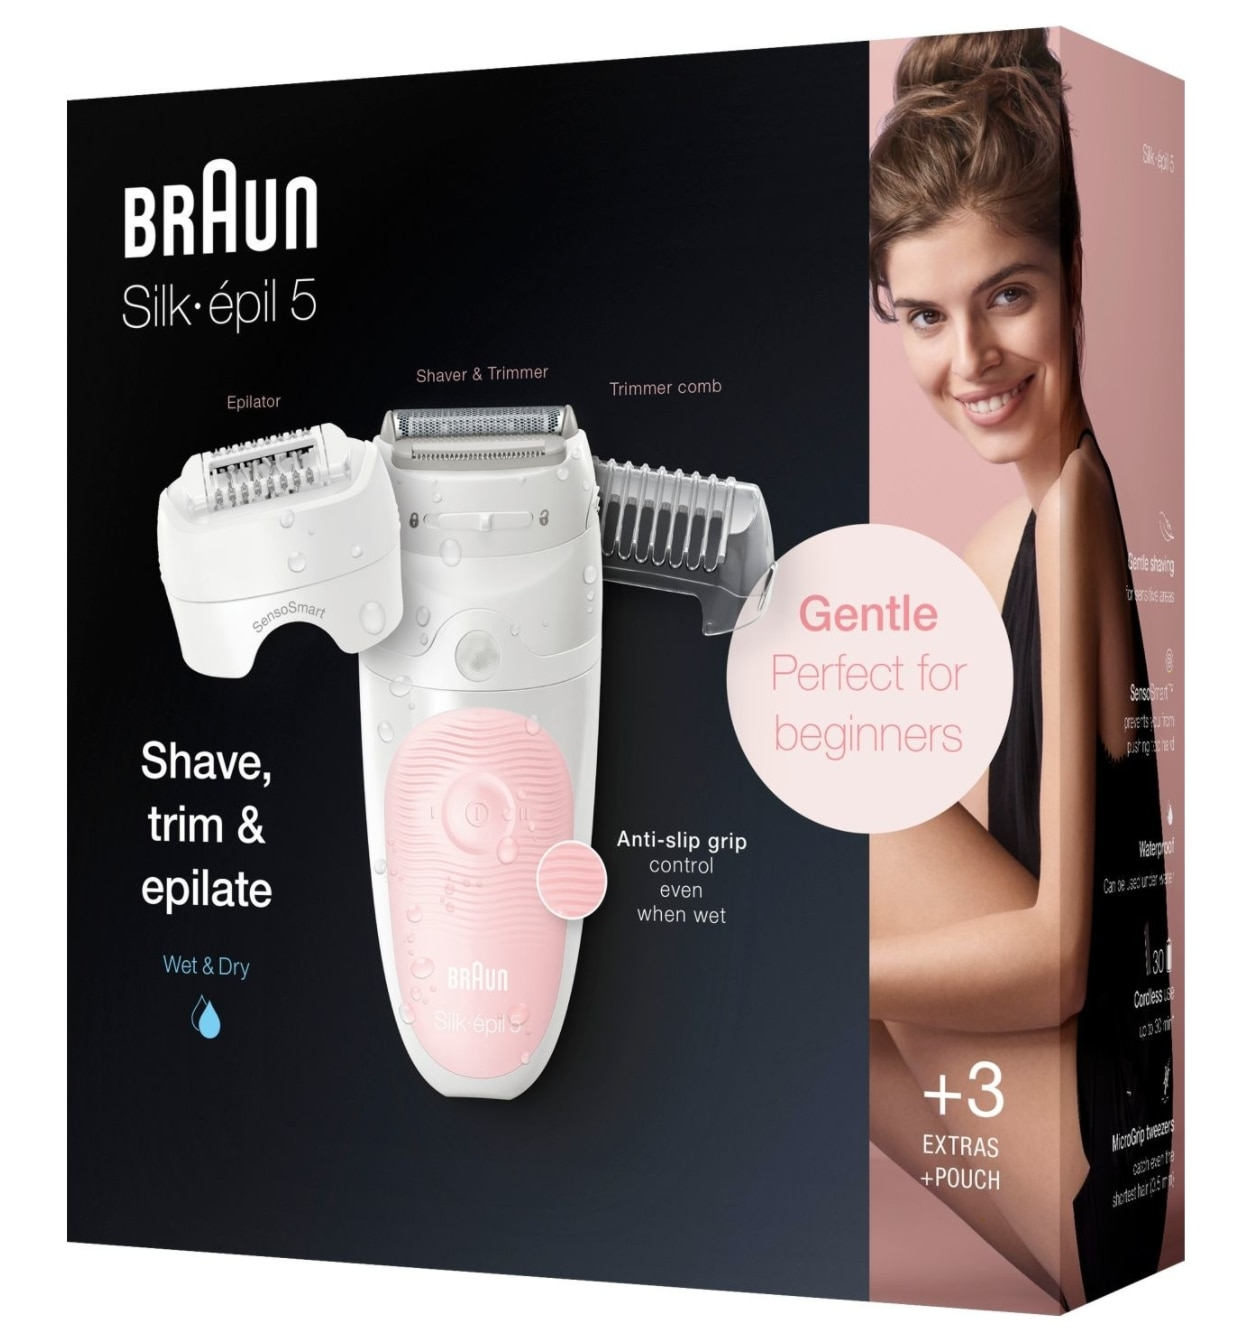 Braun Silk-epil 5 5620 Epilator Women's Shaver, Trimmer, Cordless, Rechargeable, wet & Dry Hair Removal Painless Thread Machine enlarge